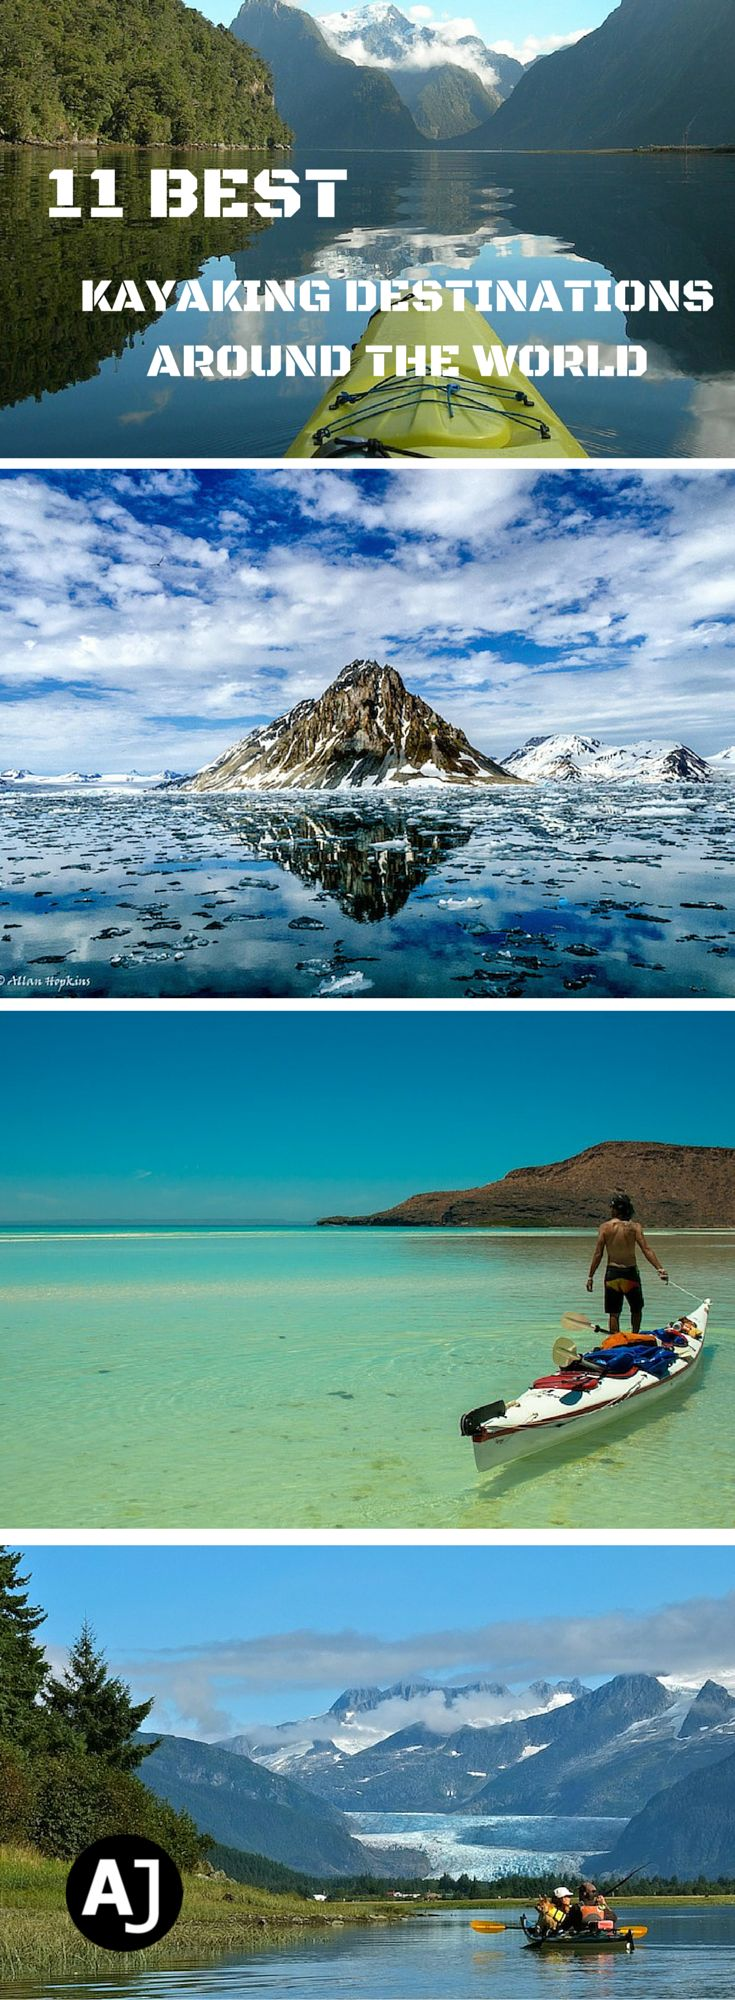 The Best Destinations Around The World For Kayaking Trips